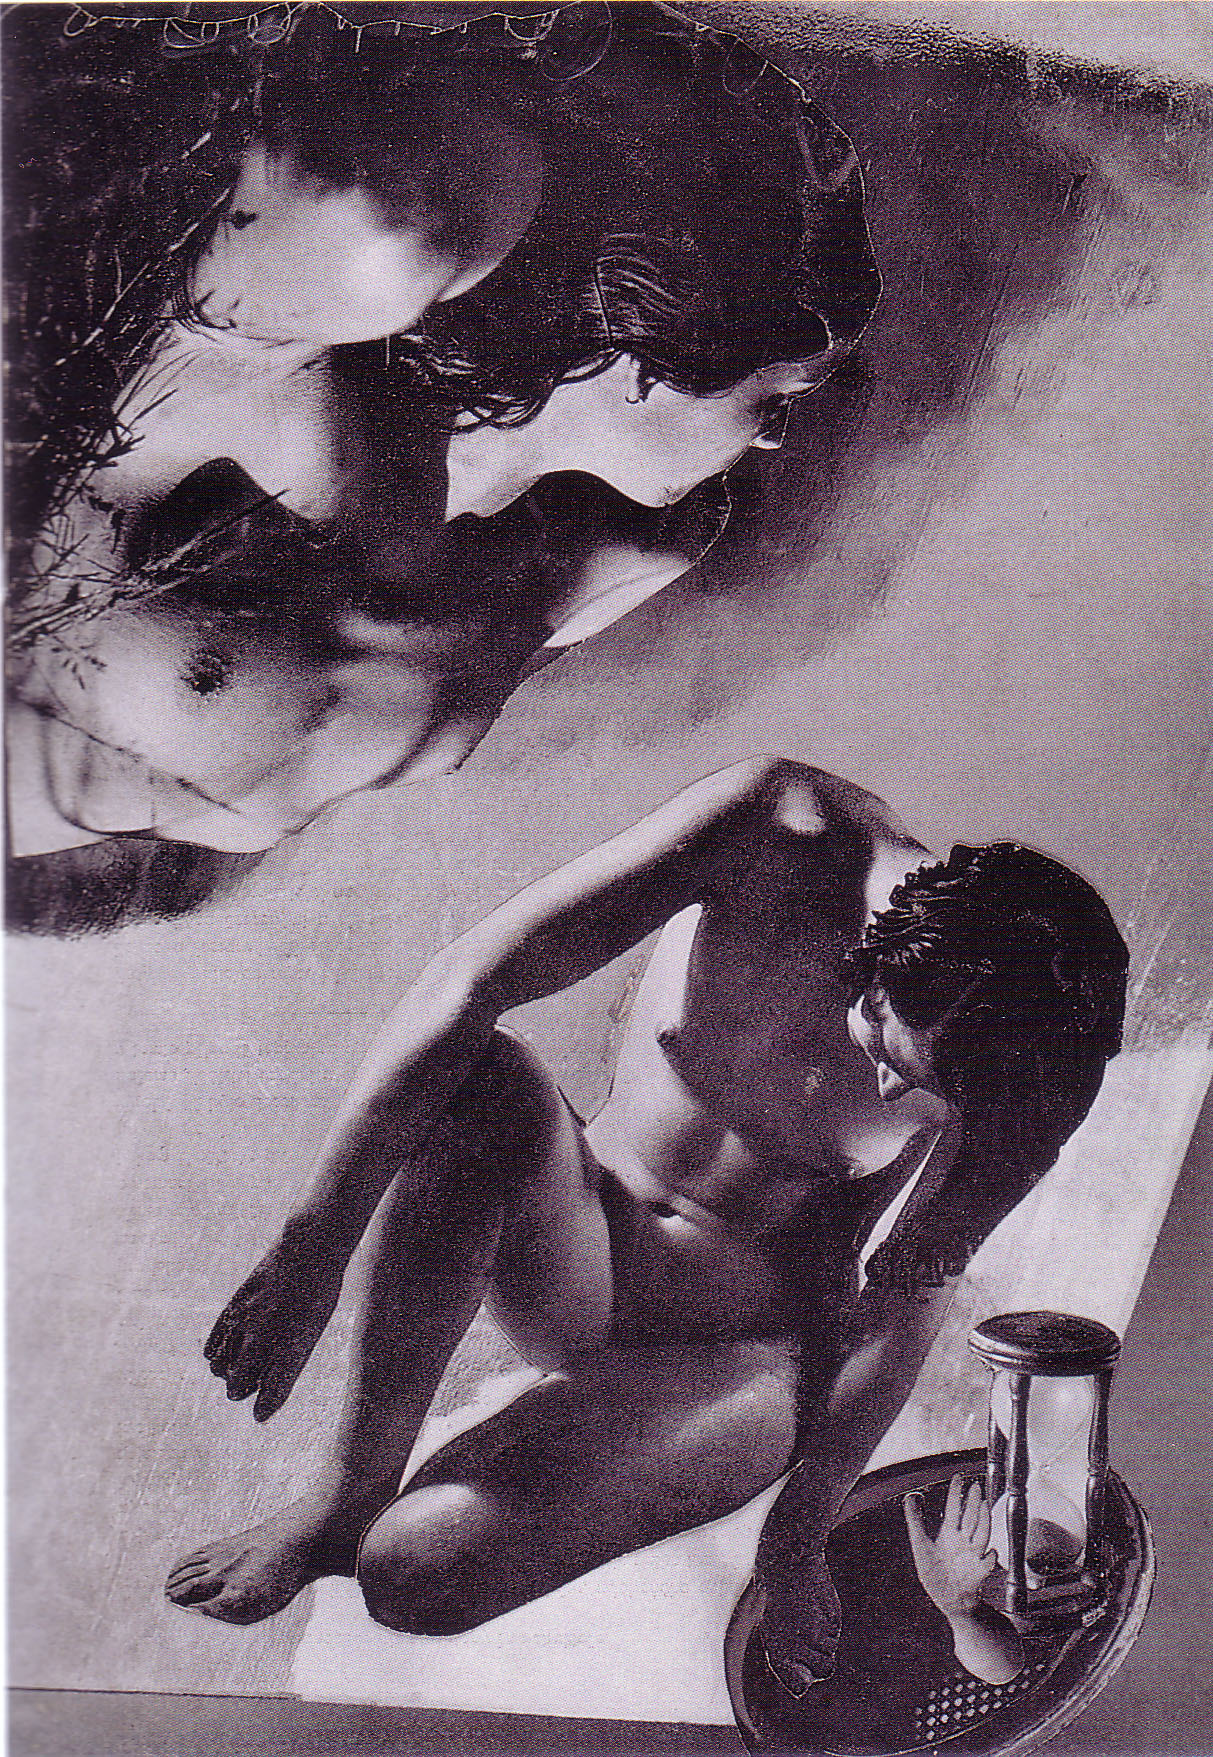 Surreal Erotica by Czech artist, Karel Teige: tumblr_m73of3SkZA1qf91zfo1_1280.jpg